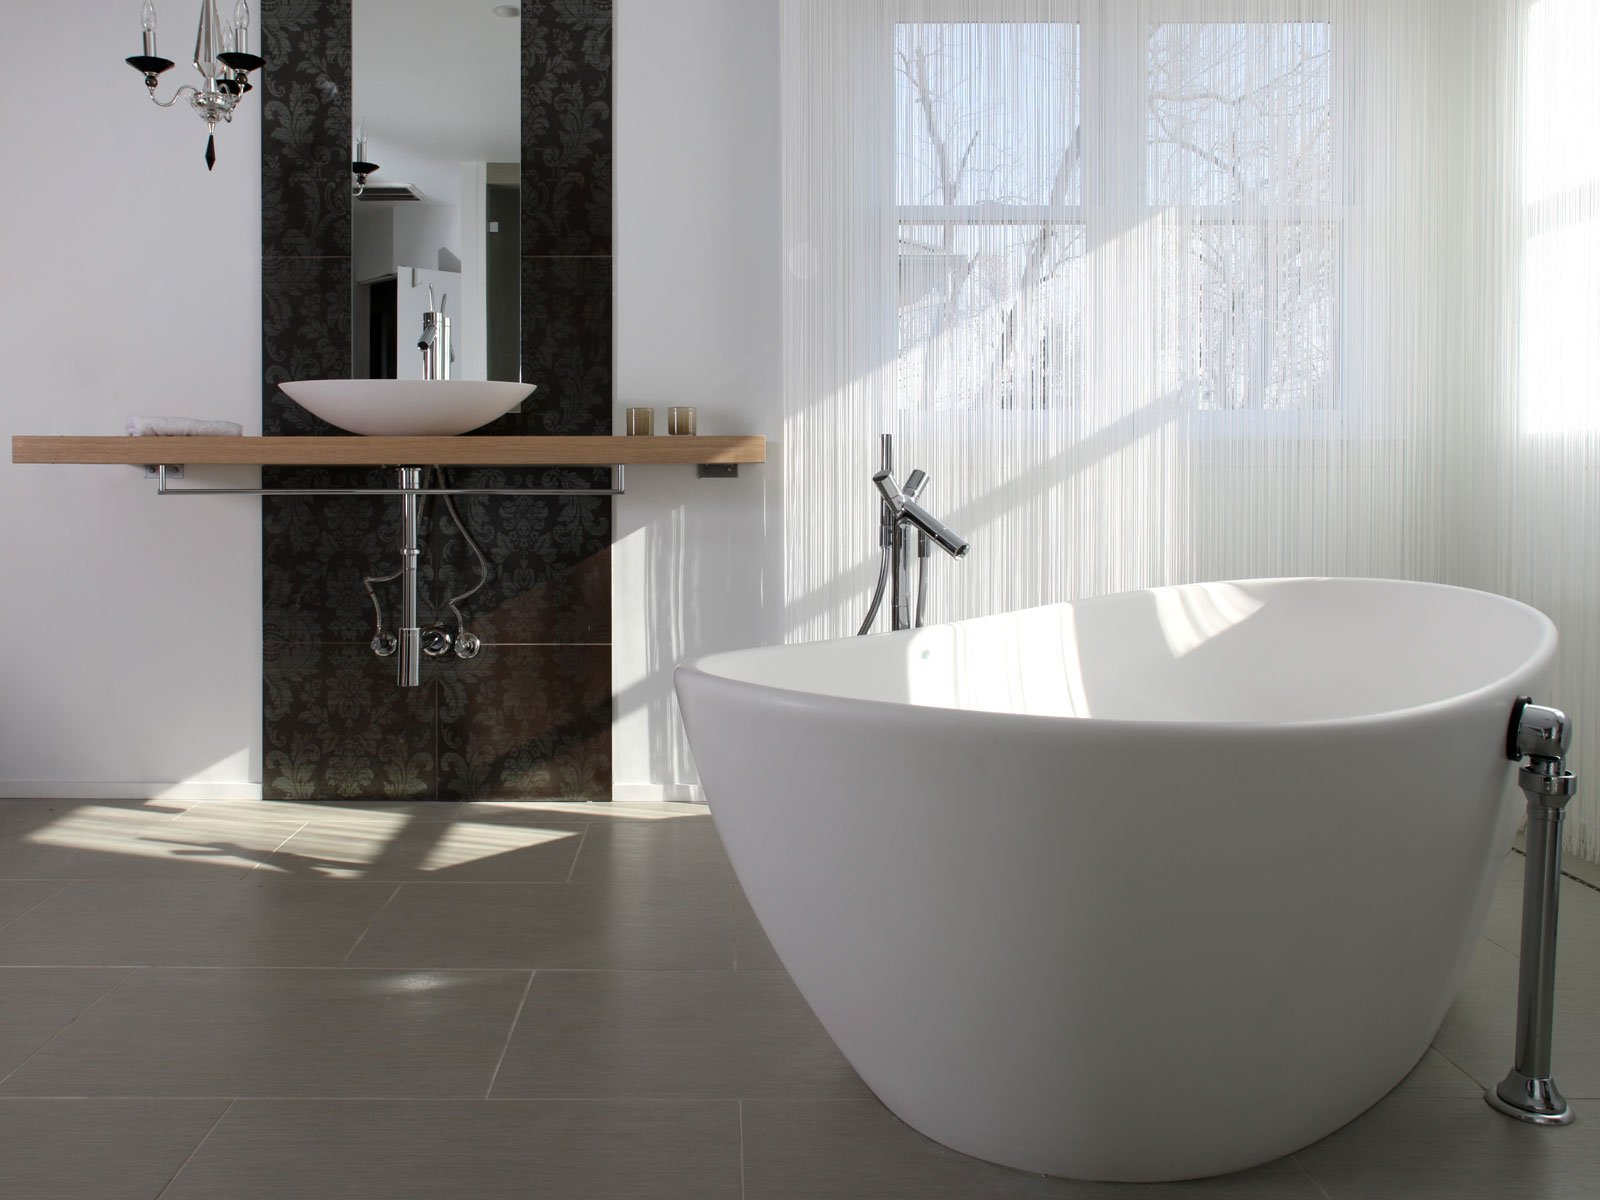 Bathroom Interior Design In Washington Dc Virginia Maryland Remodel And Redesign Services For Residential And Commercial Bathrooms